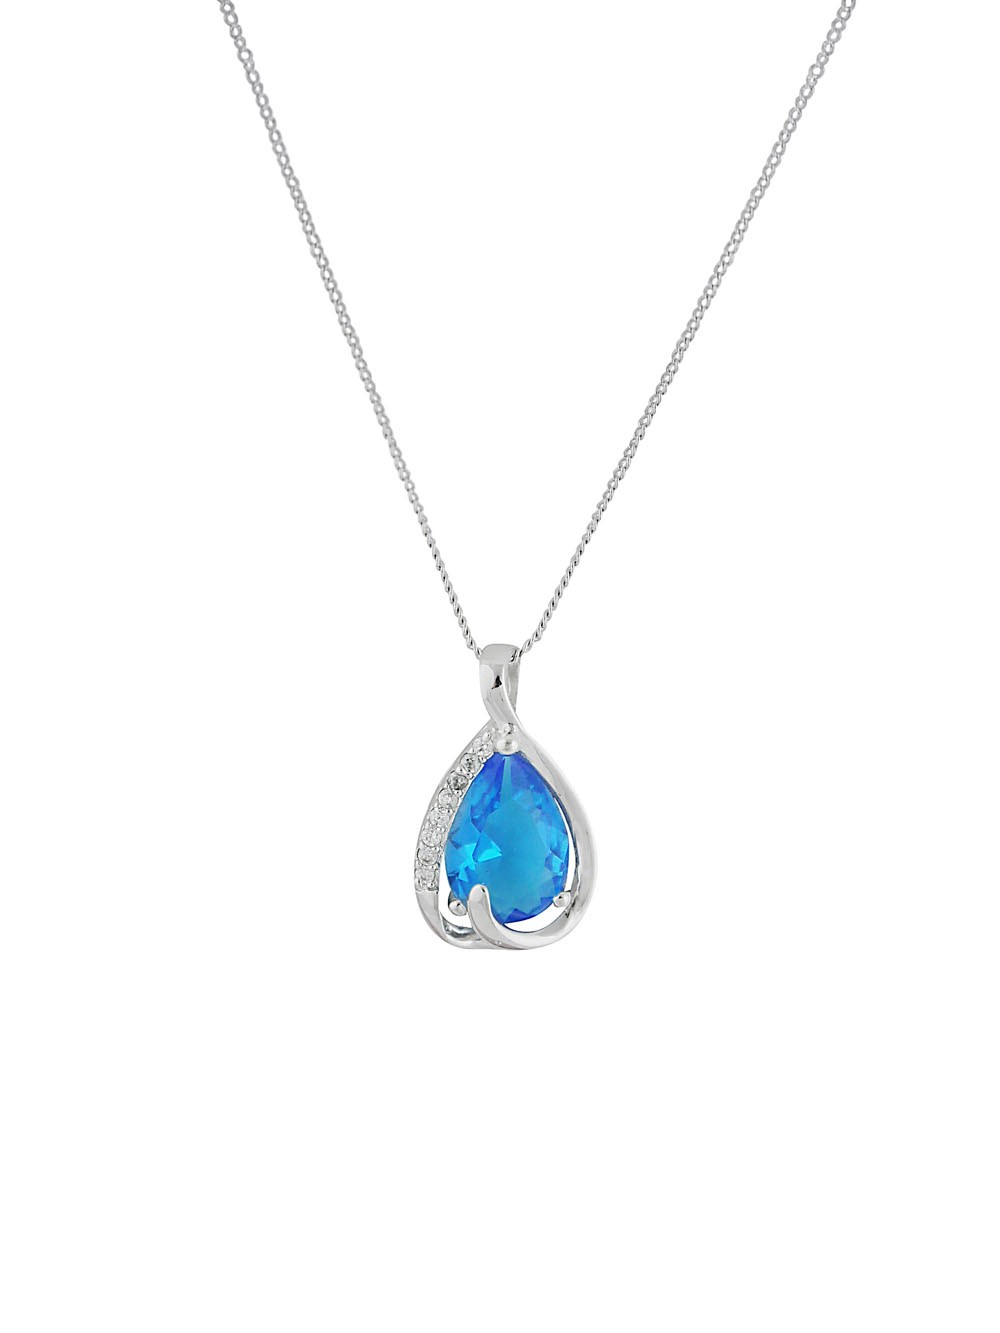 Pendant Necklace Drop Pendant Necklace with Cubic Zirconia